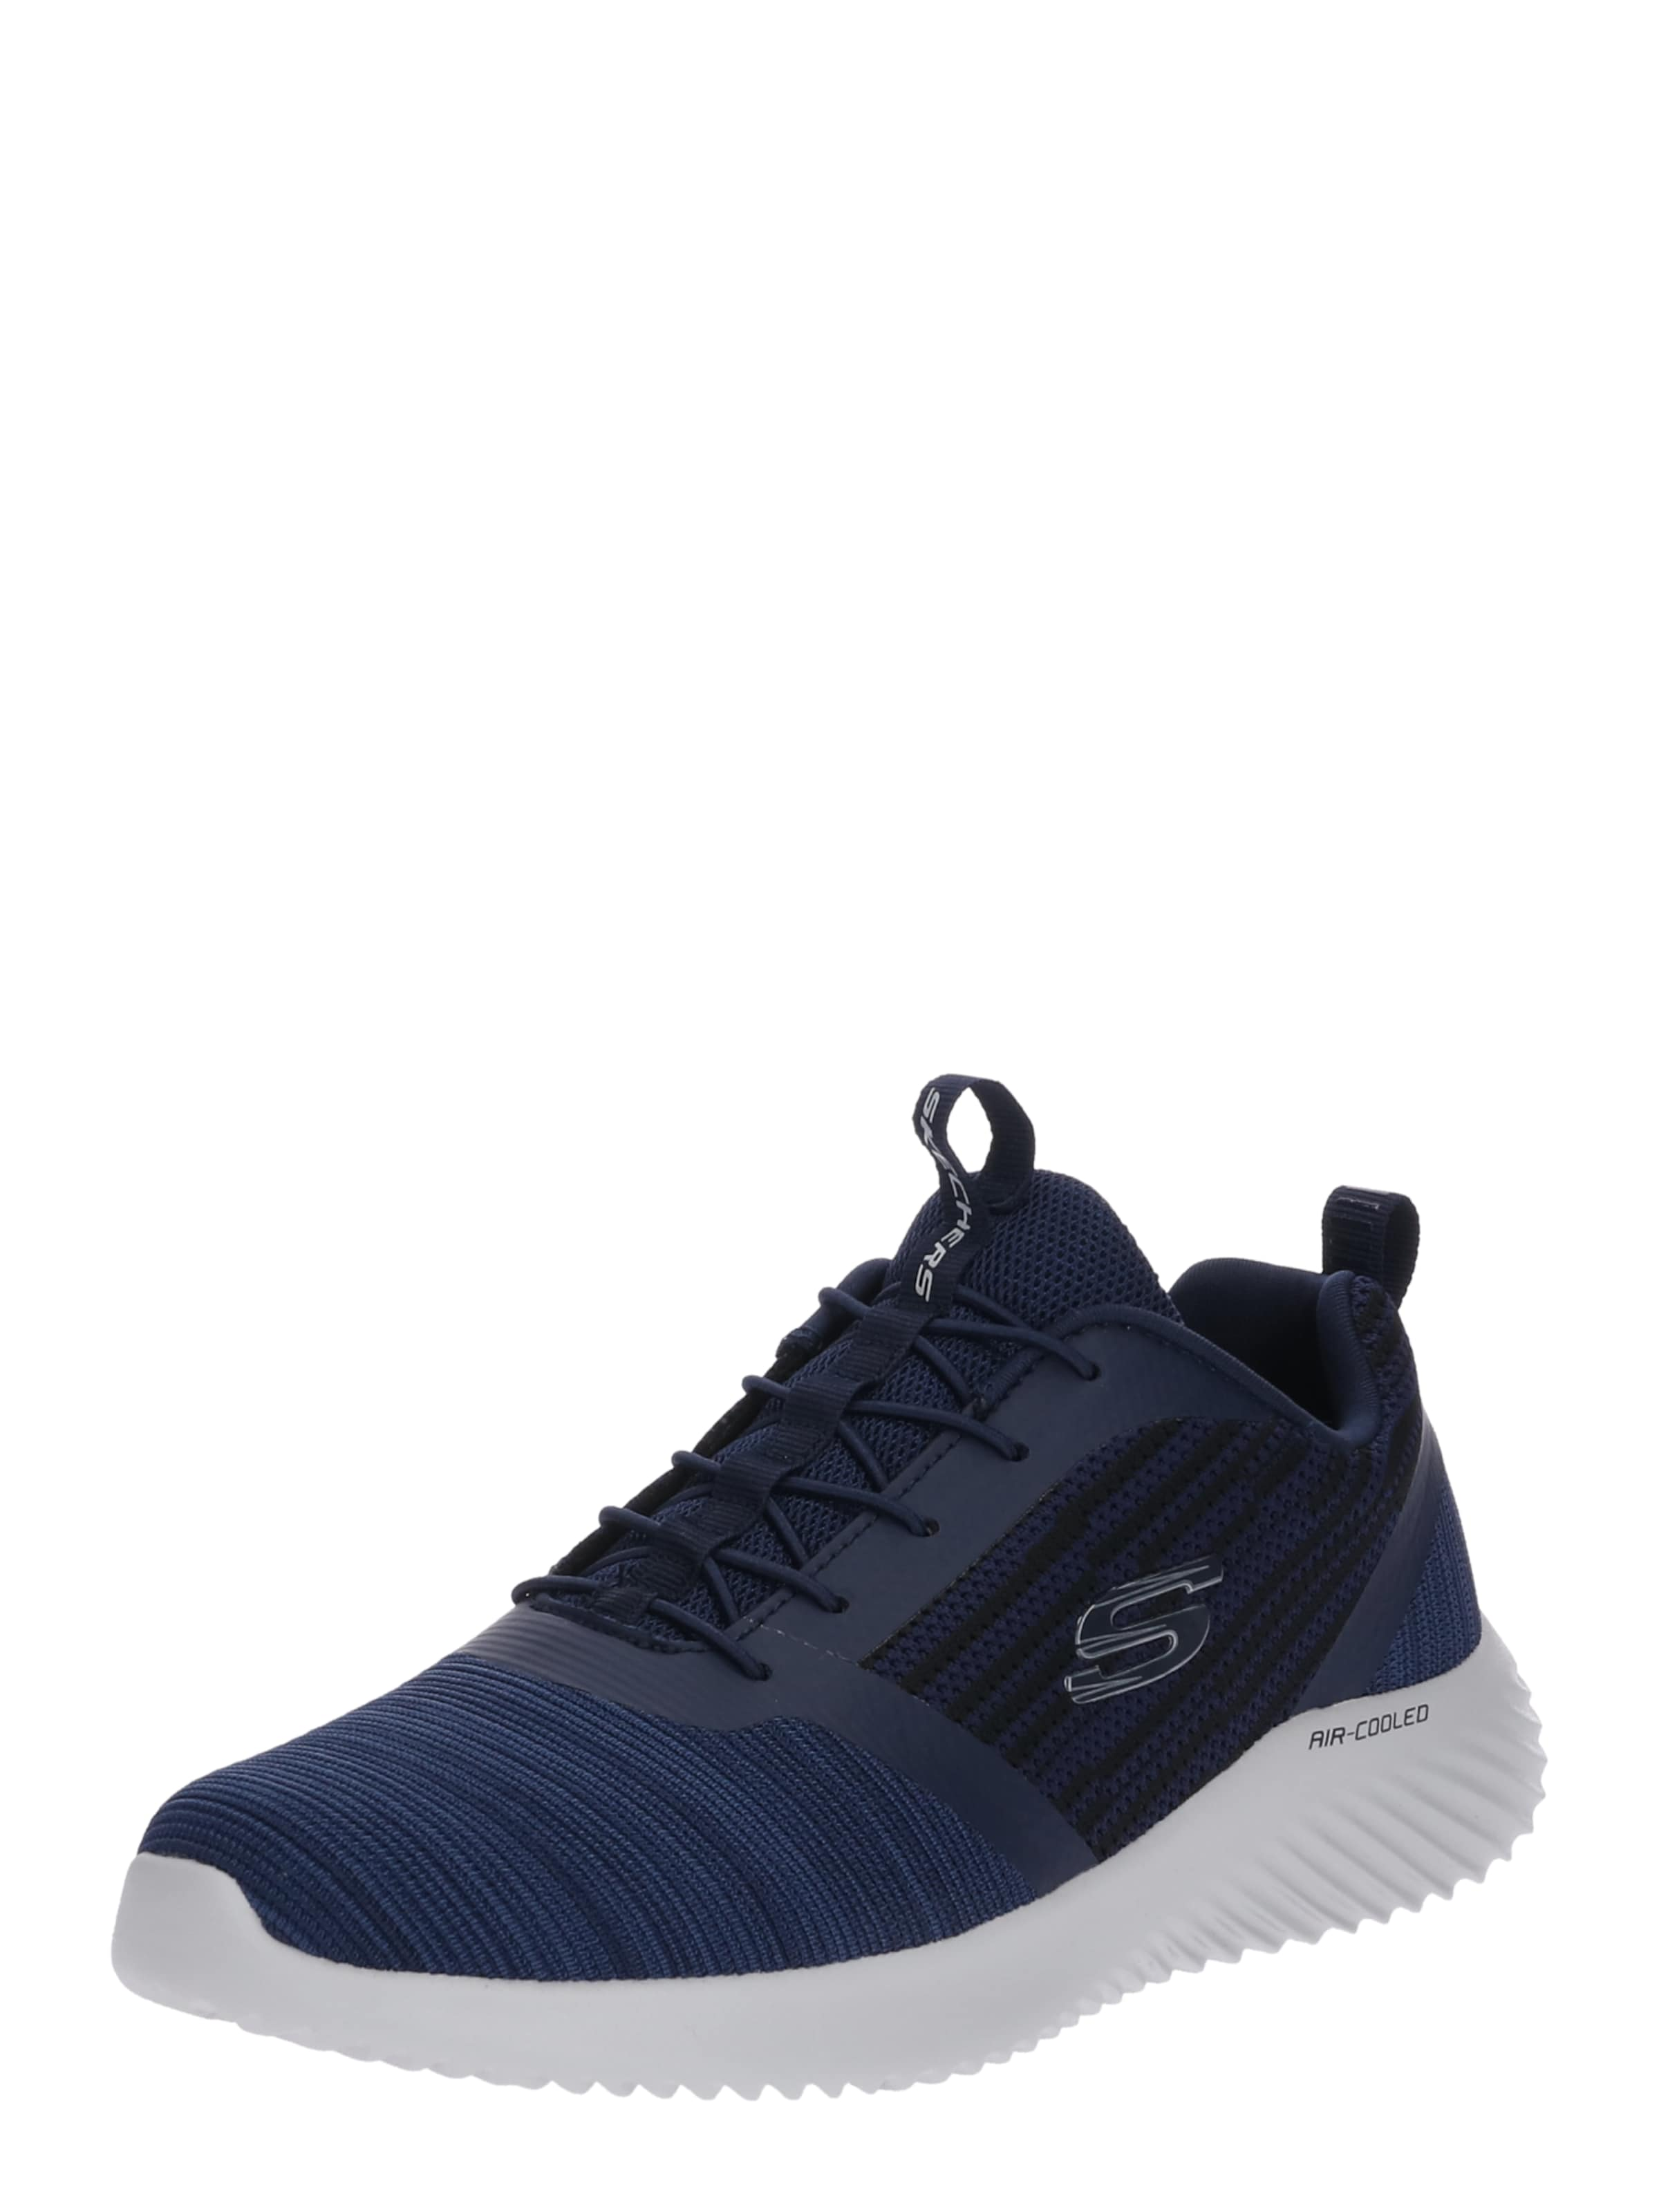 Navy 'bounder' Sneaker Skechers Skechers 'bounder' Skechers In Navy Sneaker In 0kXnOPw8